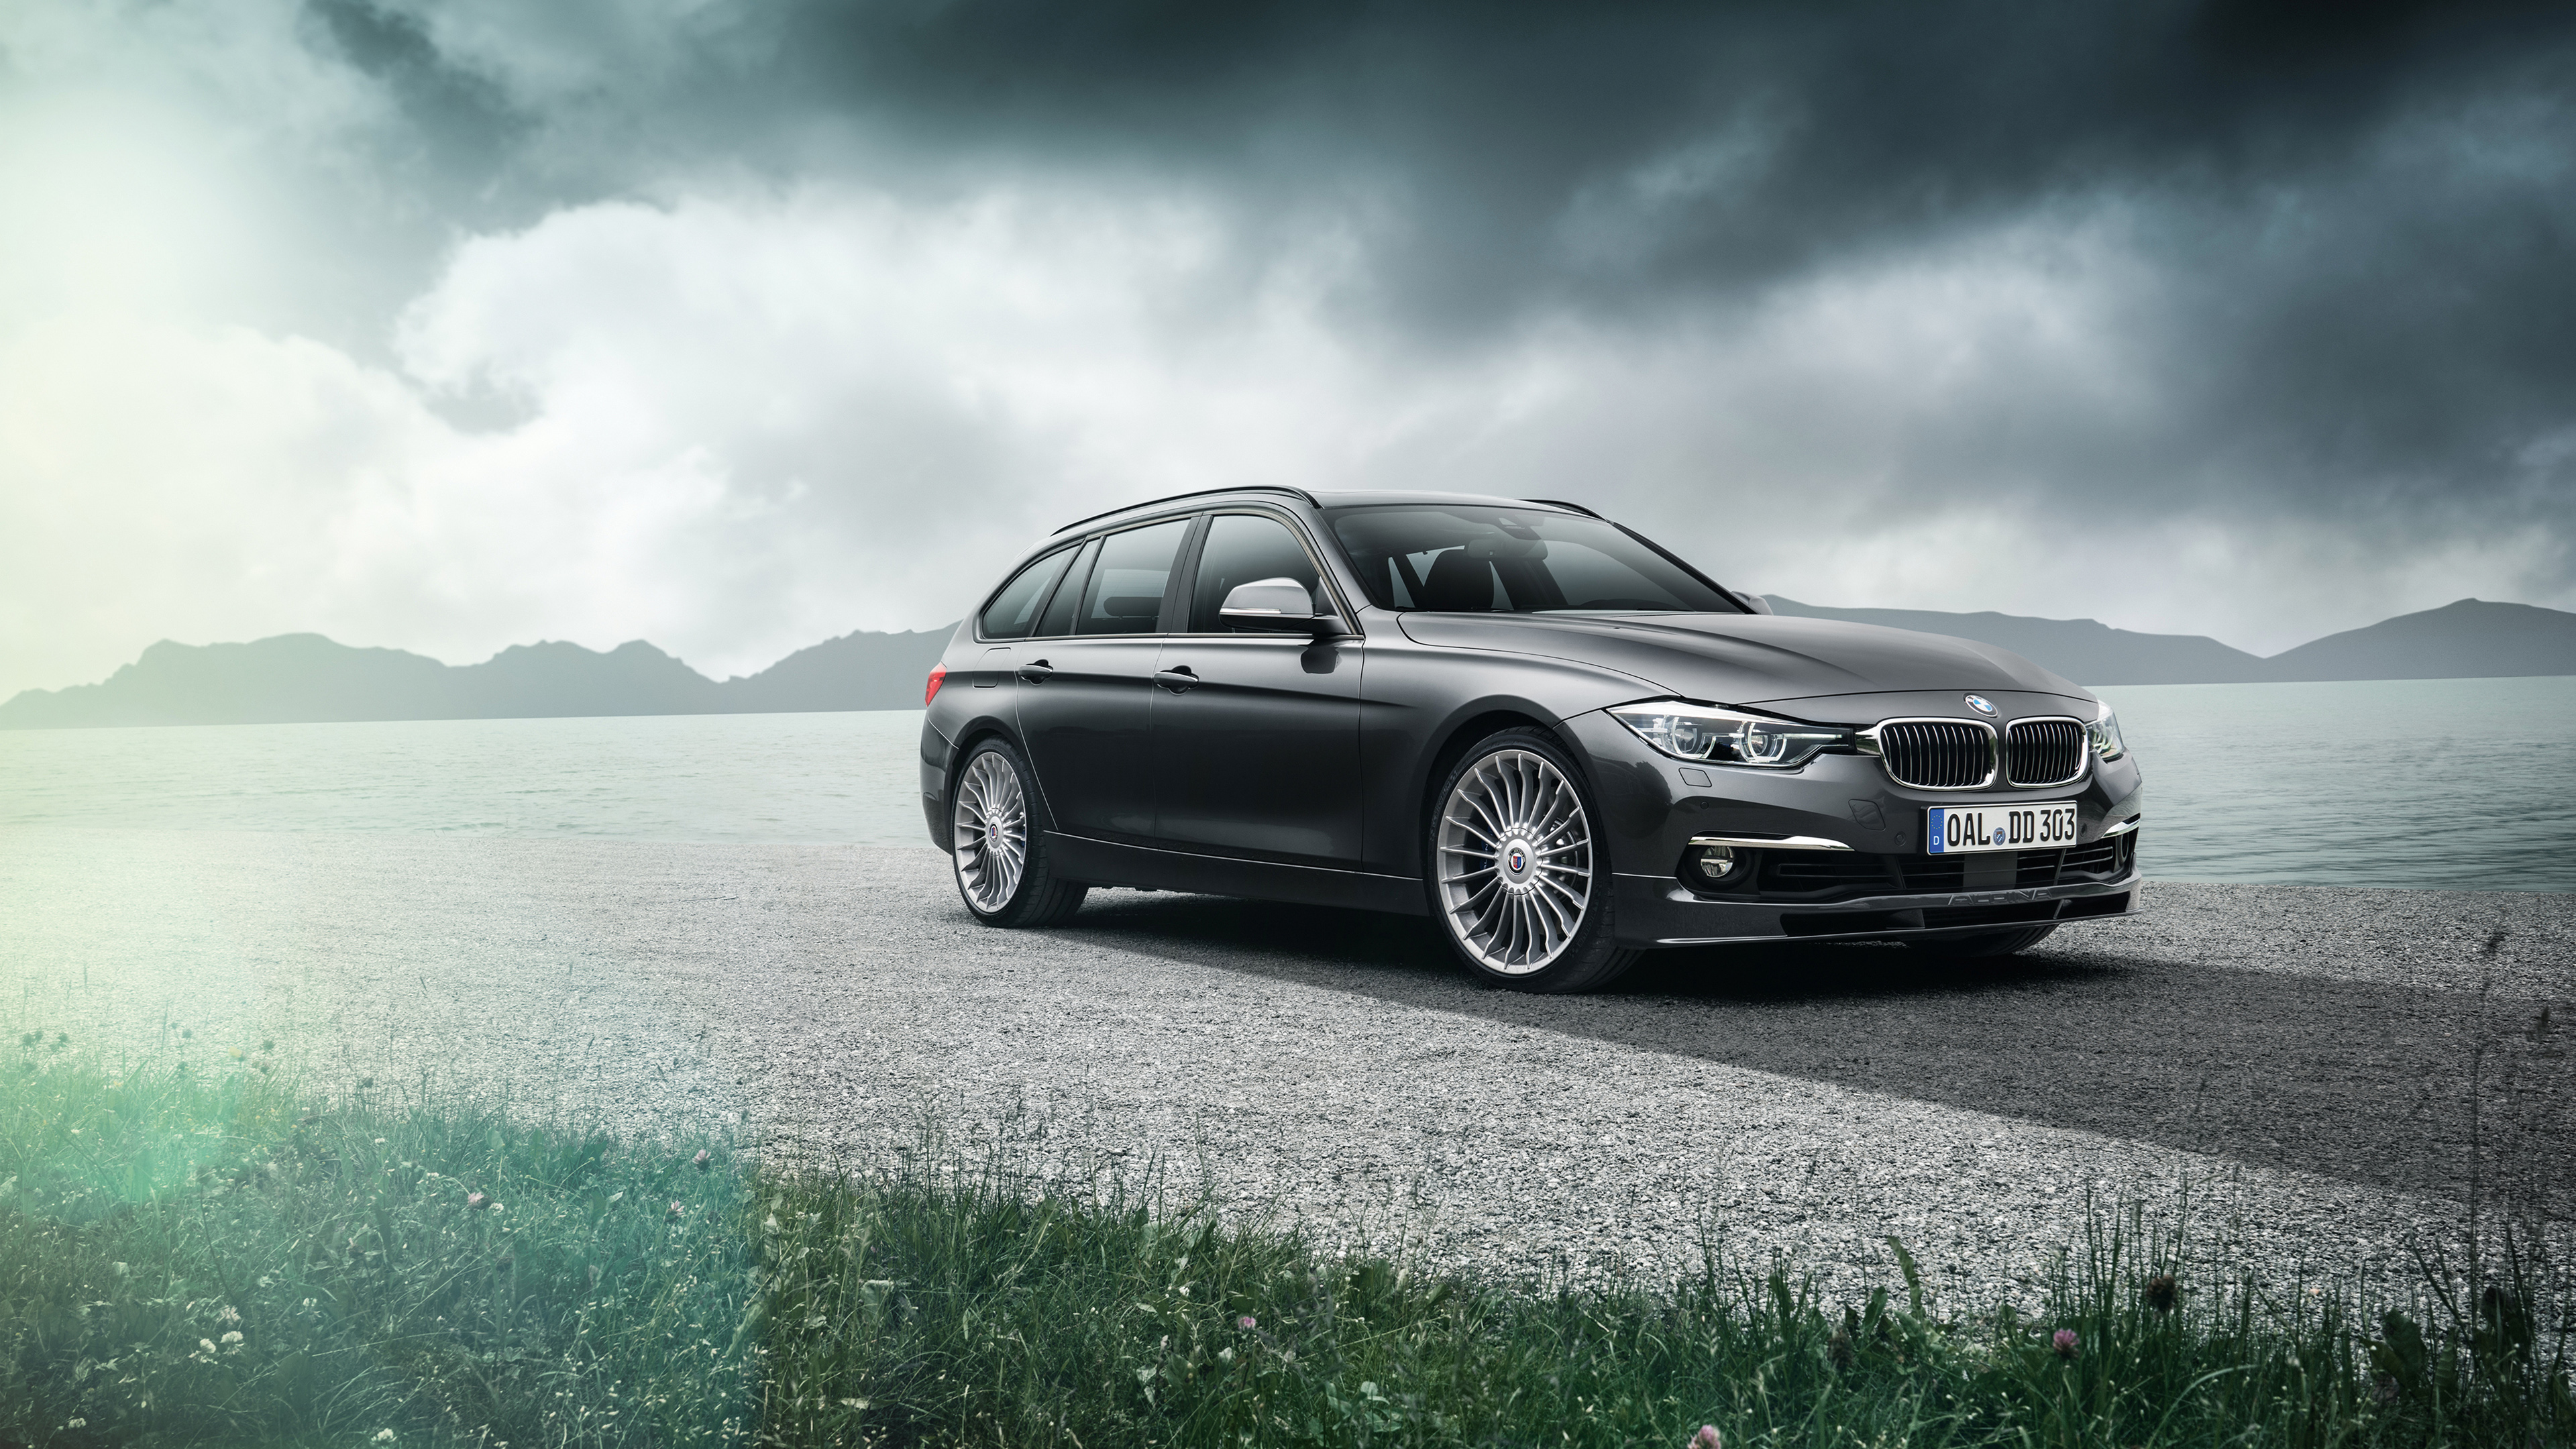 2015 Alpina D3 BMW 3 Series Wallpaper | HD Car Wallpapers ...